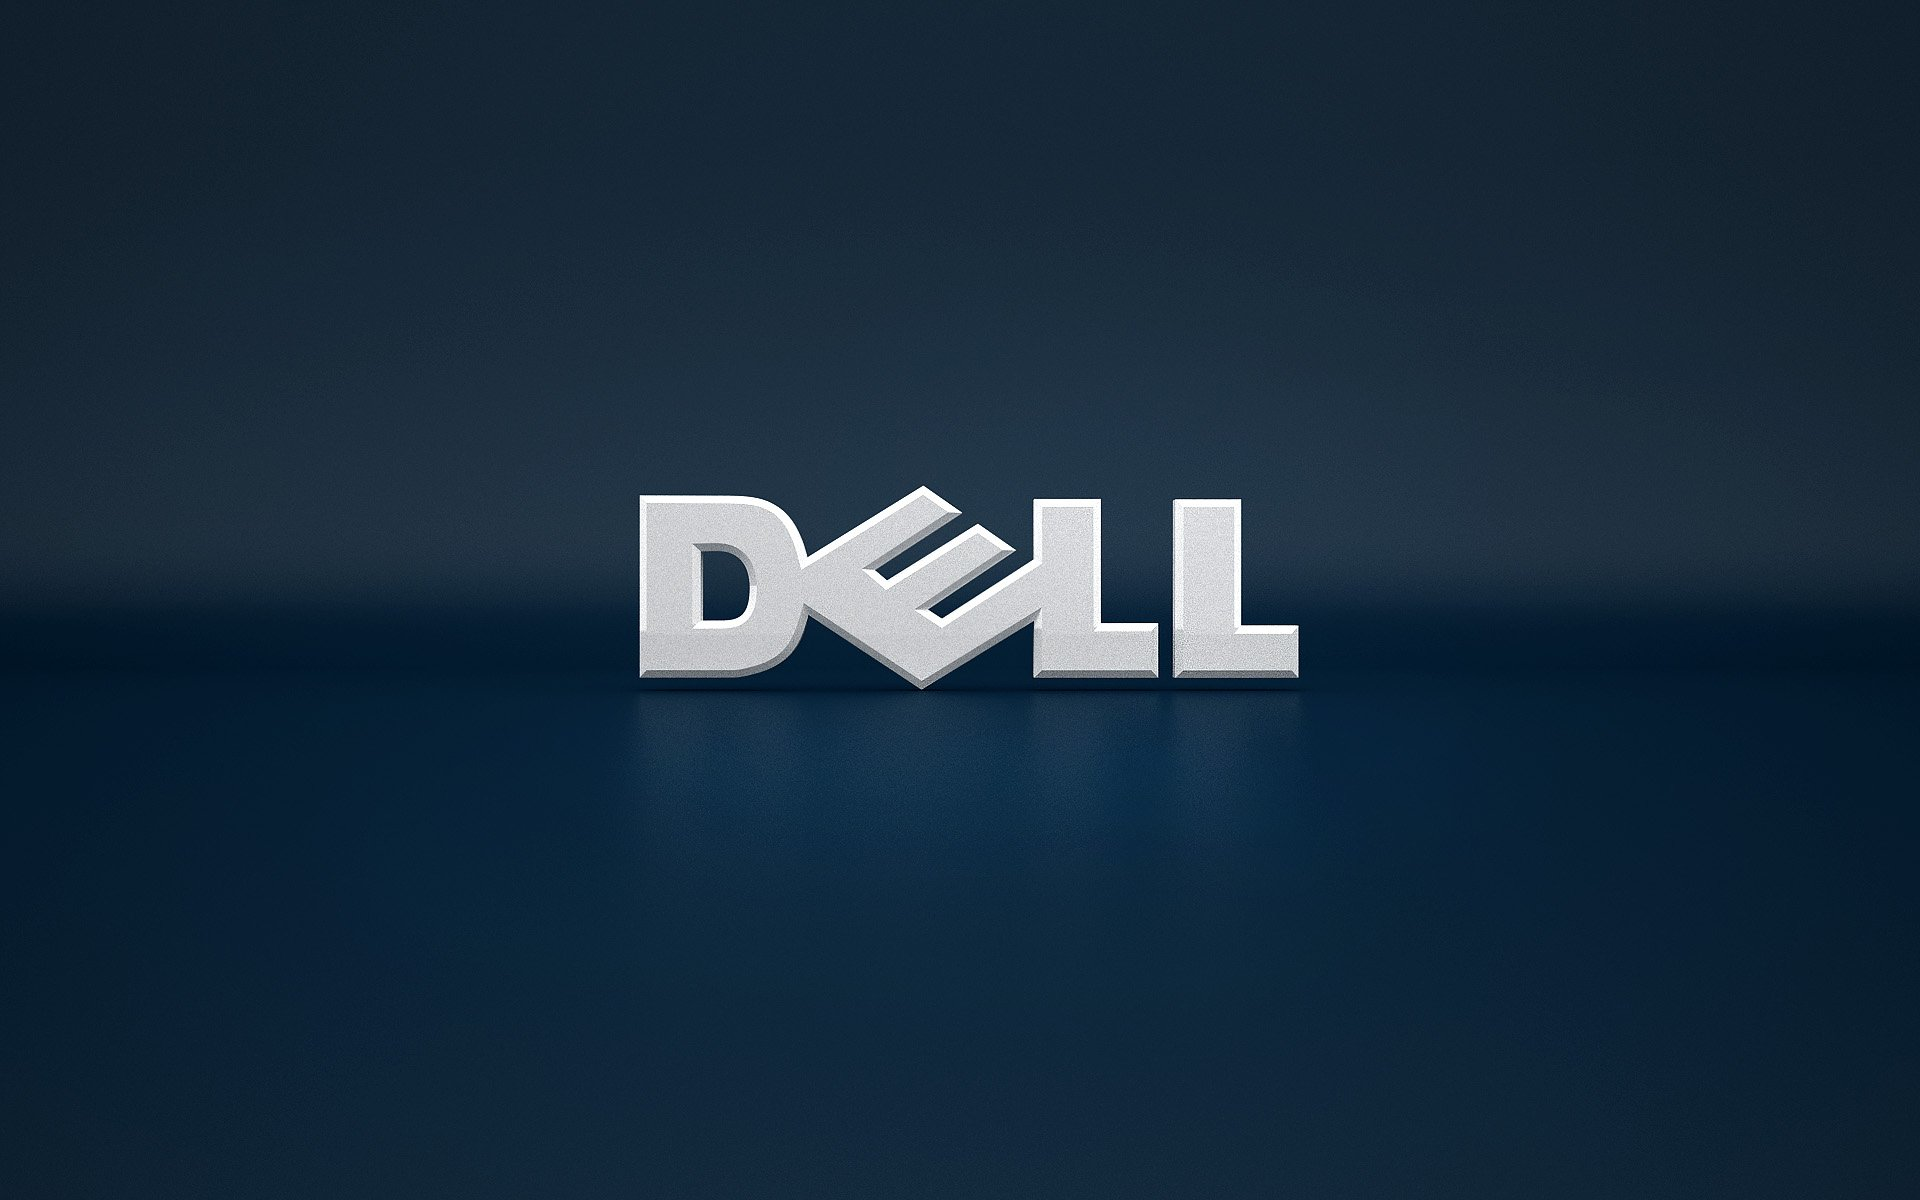 Dell Brand Widescreen Wallpapers HD Wallpapers 1920x1200